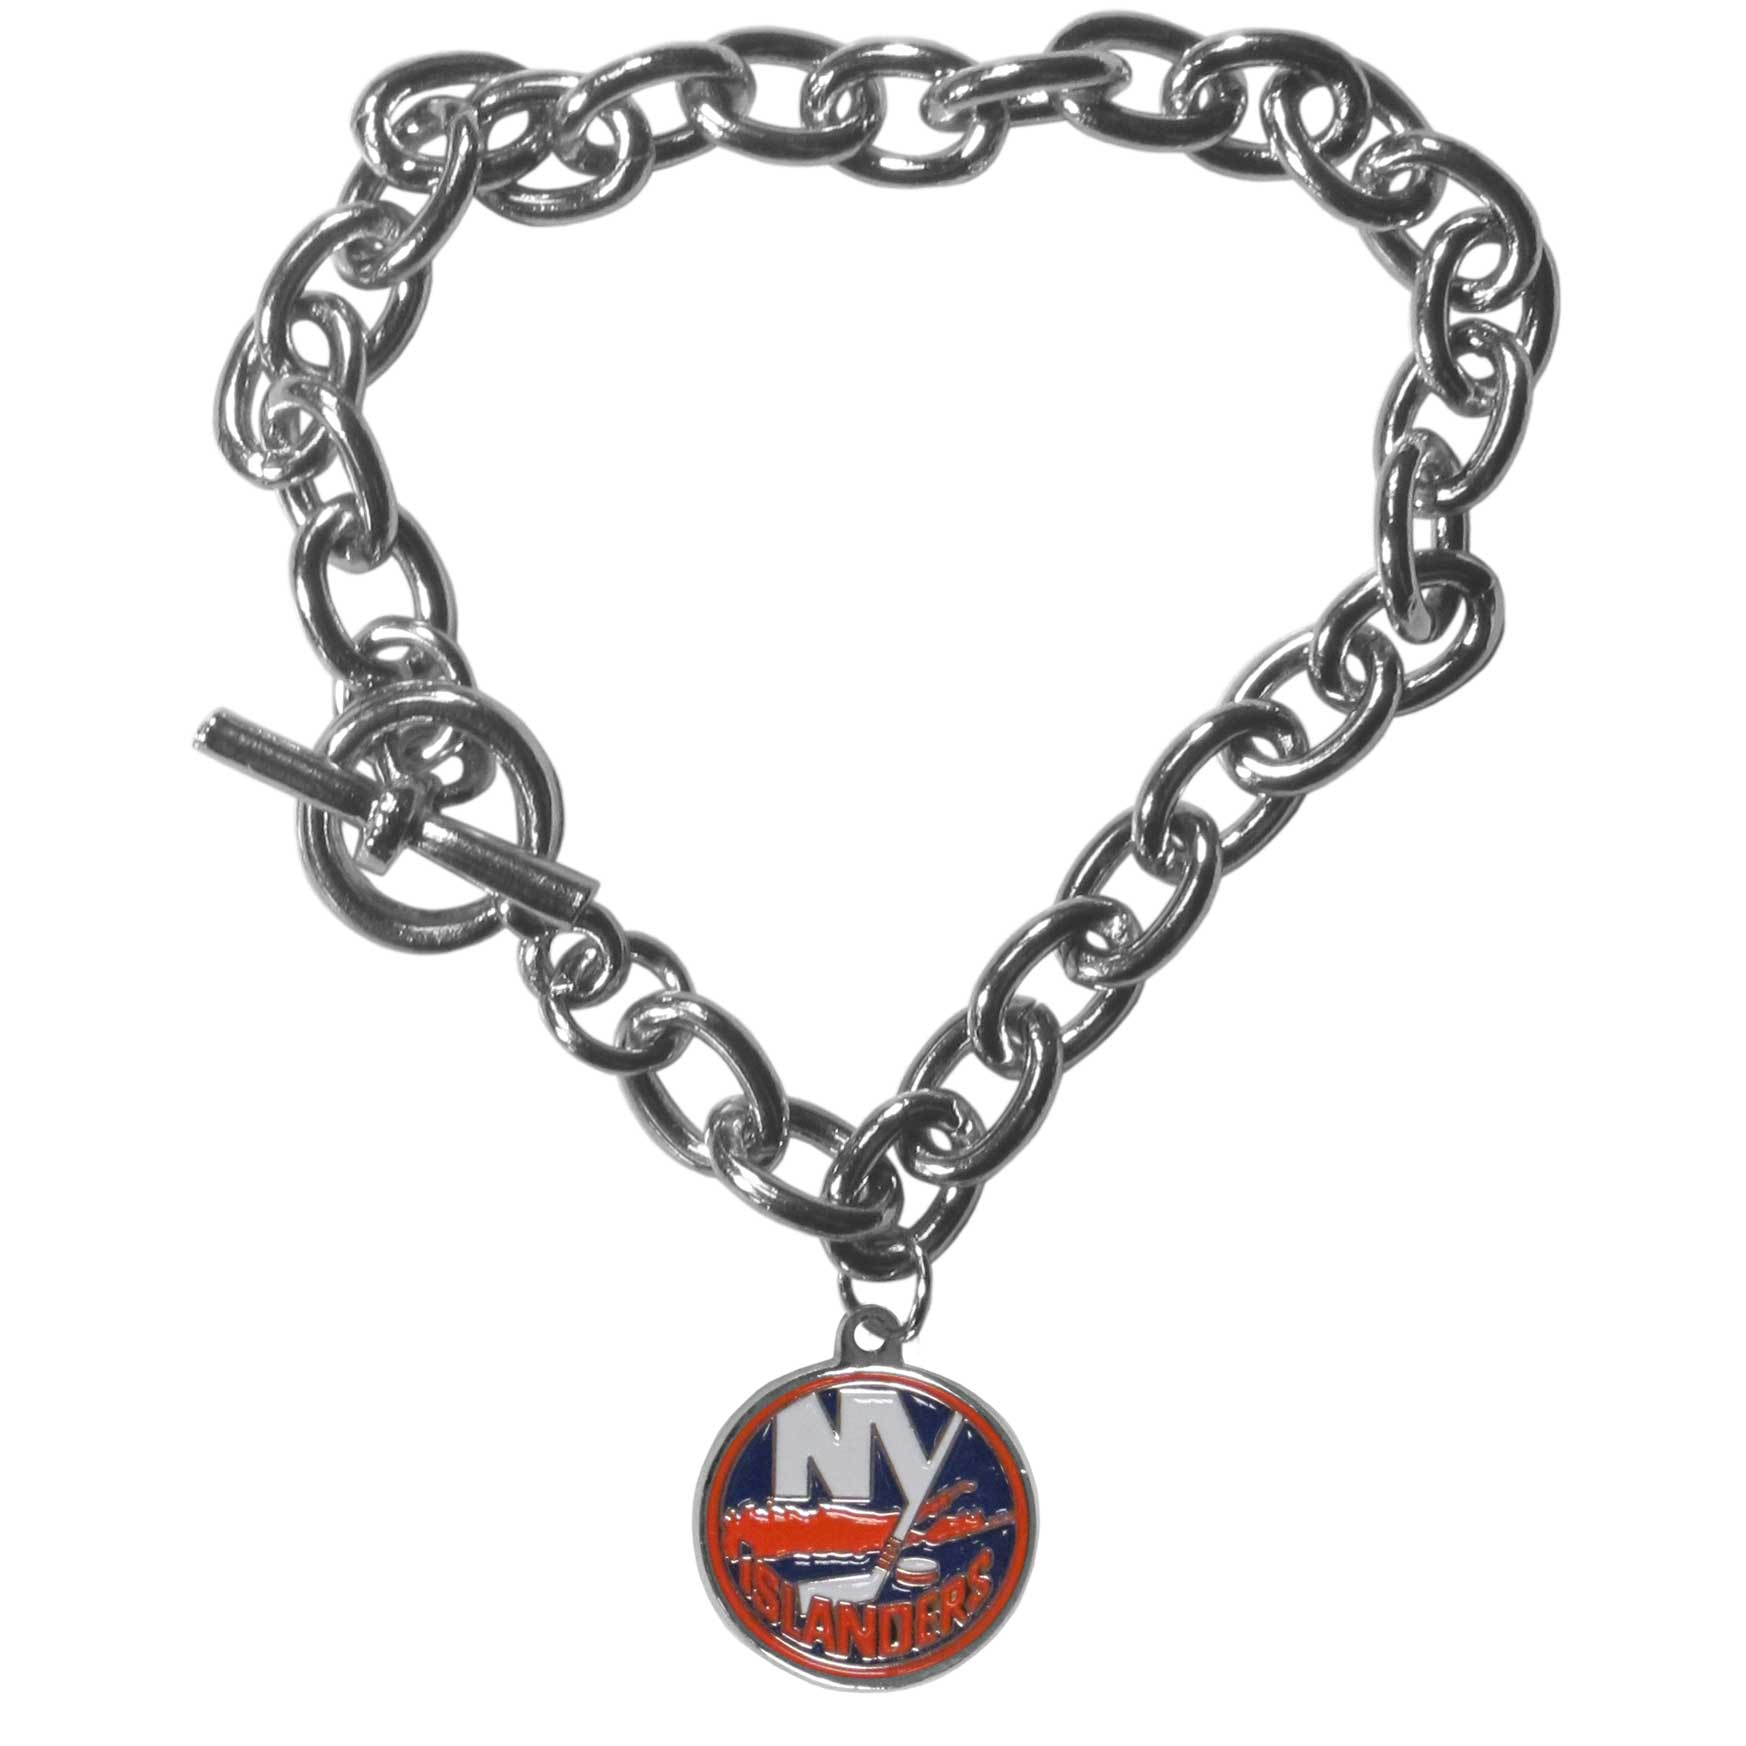 New York Islanders® Charm Chain Bracelet - Our classic single charm bracelet is a great way to show off your team pride! The 7.5 inch large link chain features a high polish New York Islanders® charm and features a toggle clasp which makes it super easy to take on and off.